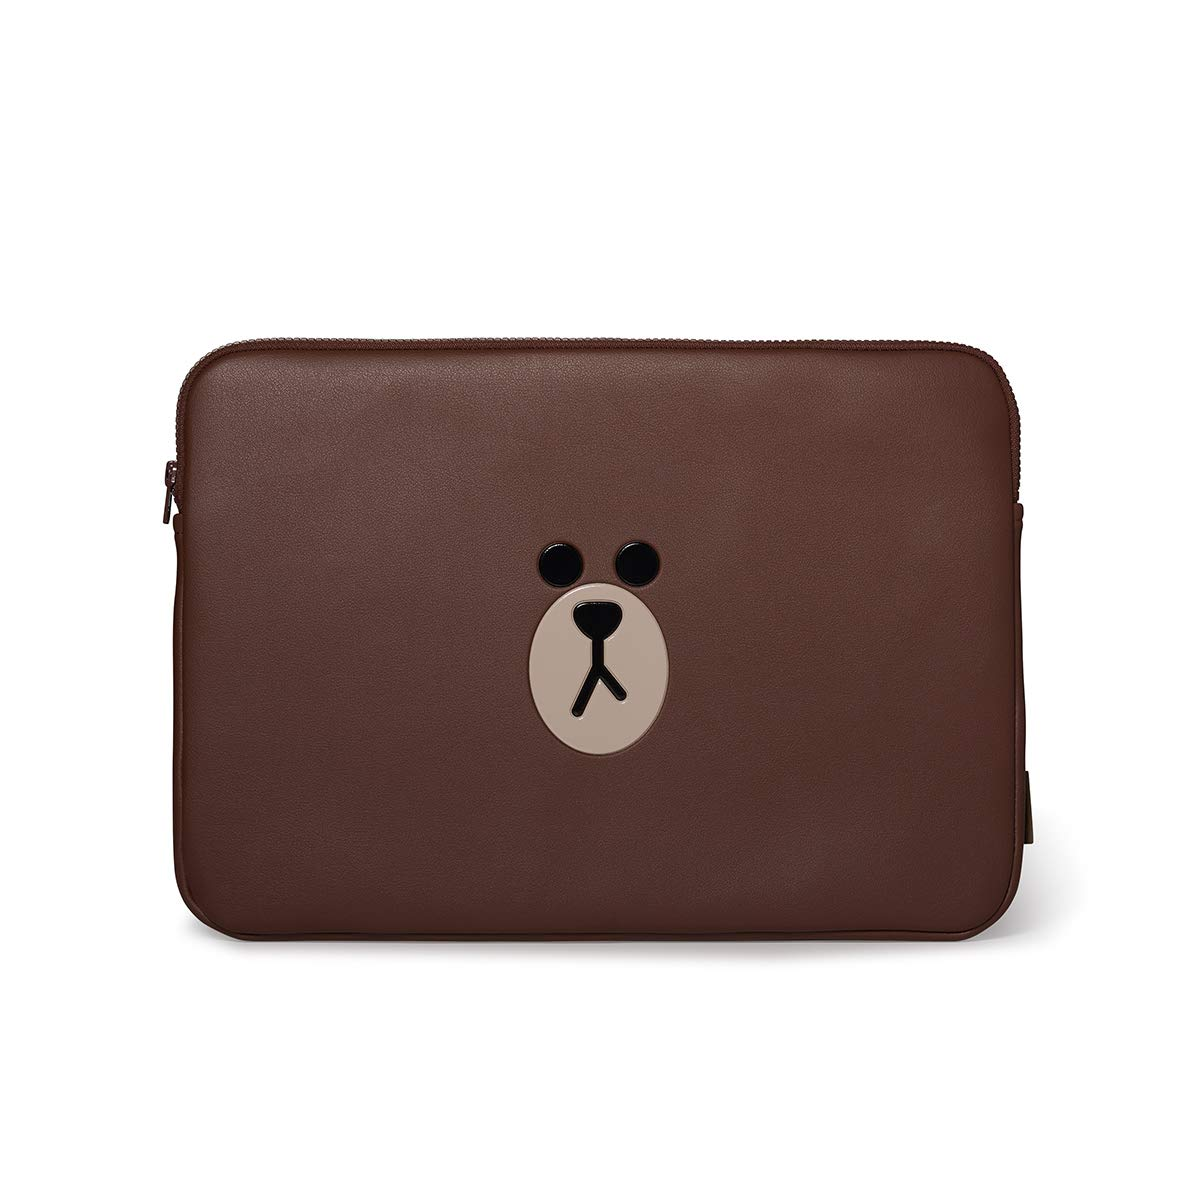 LINE FRIENDS Faux Leather Laptop Sleeve - Brown Character Case Cover 15 Inches, Brown